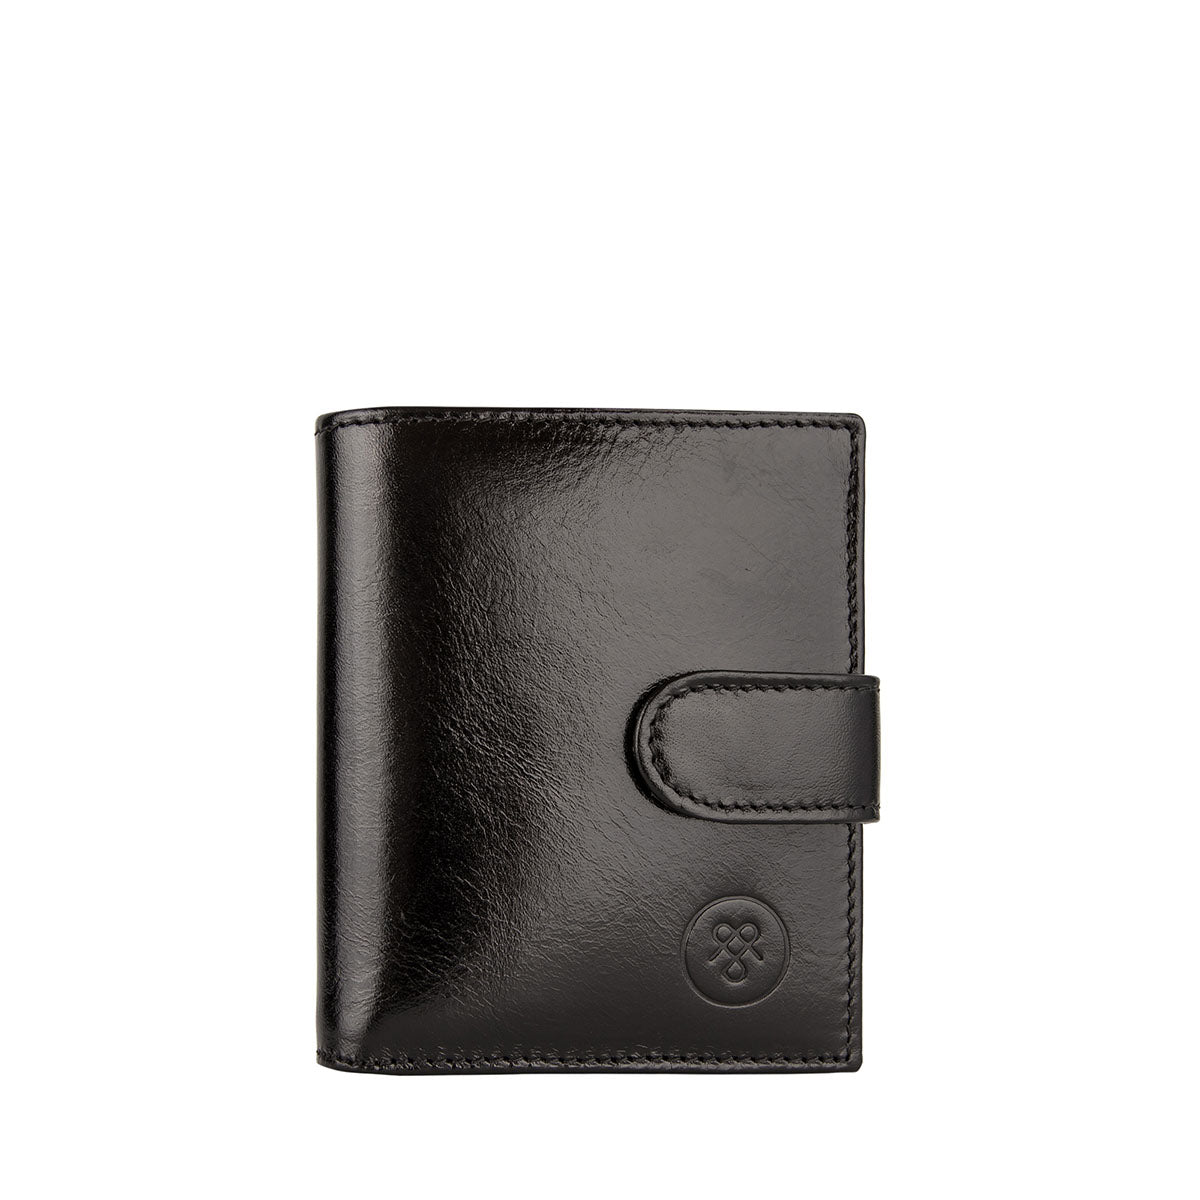 Image 1 of the 'Pietre' Black Veg-Tanned Leather Compact Wallet